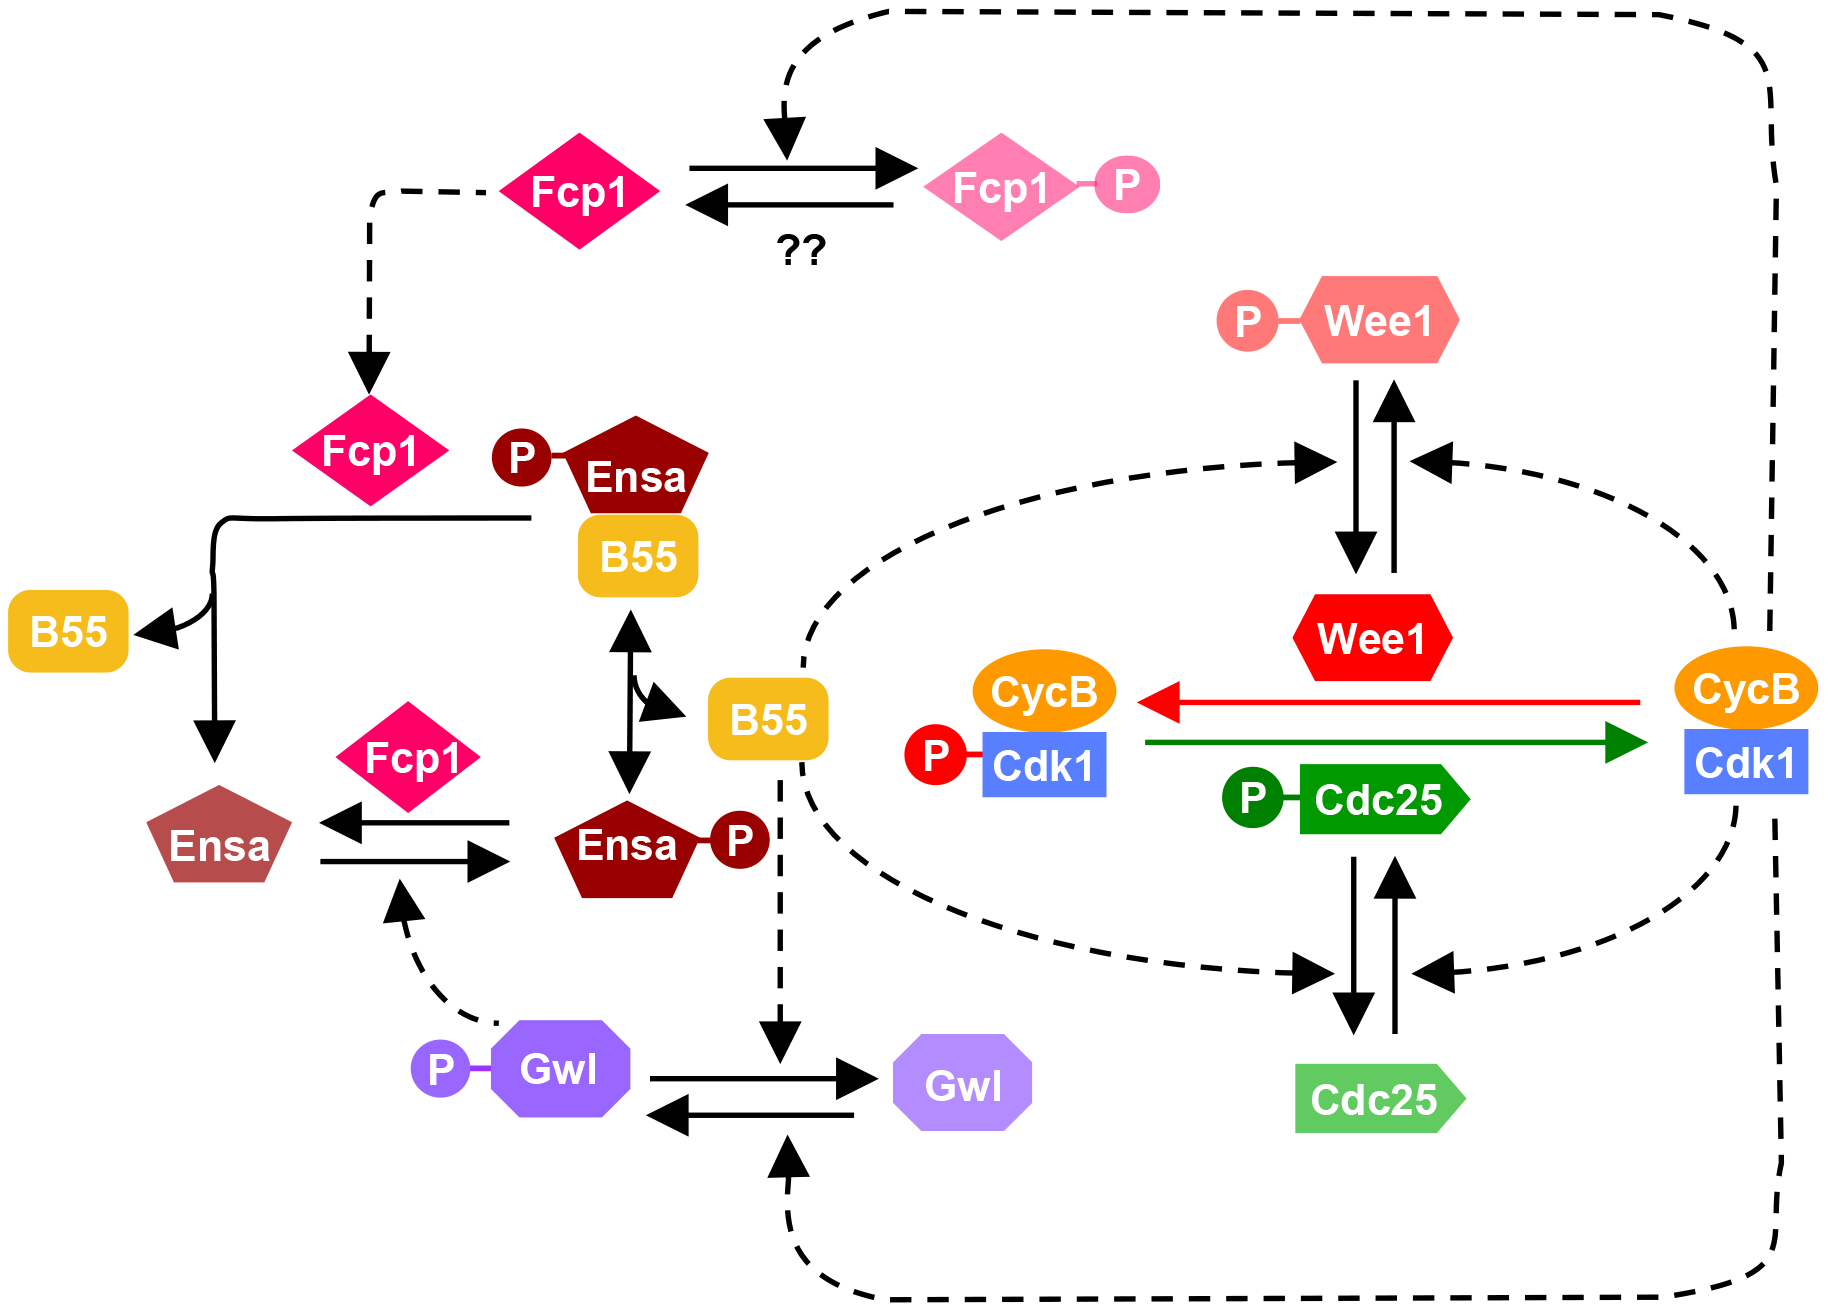 Revised model of the Cdk1 activation loop.